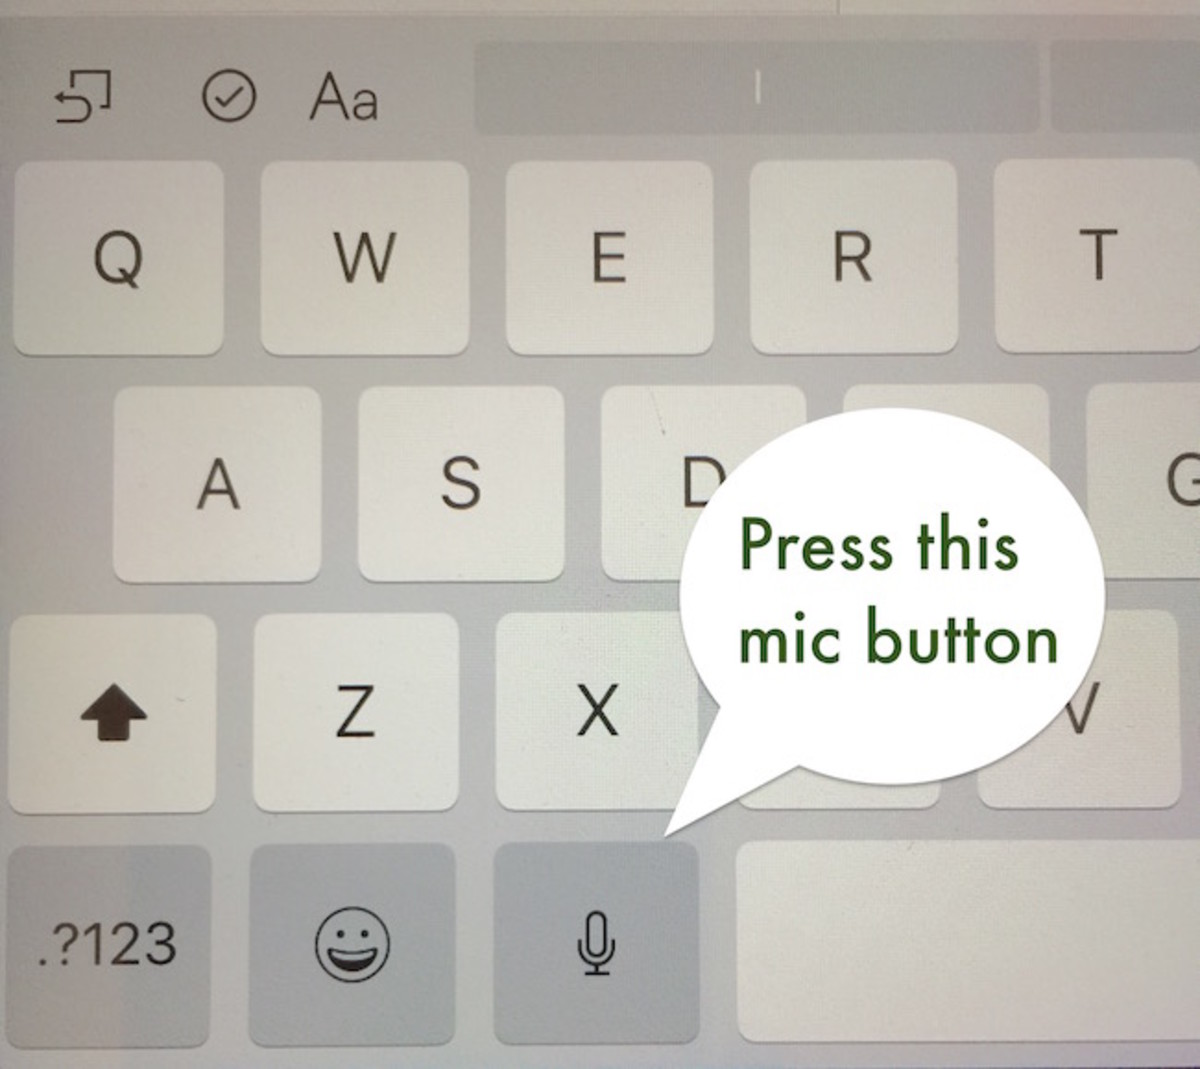 How to Use Dictation on an iPhone or iPad Without Frustration